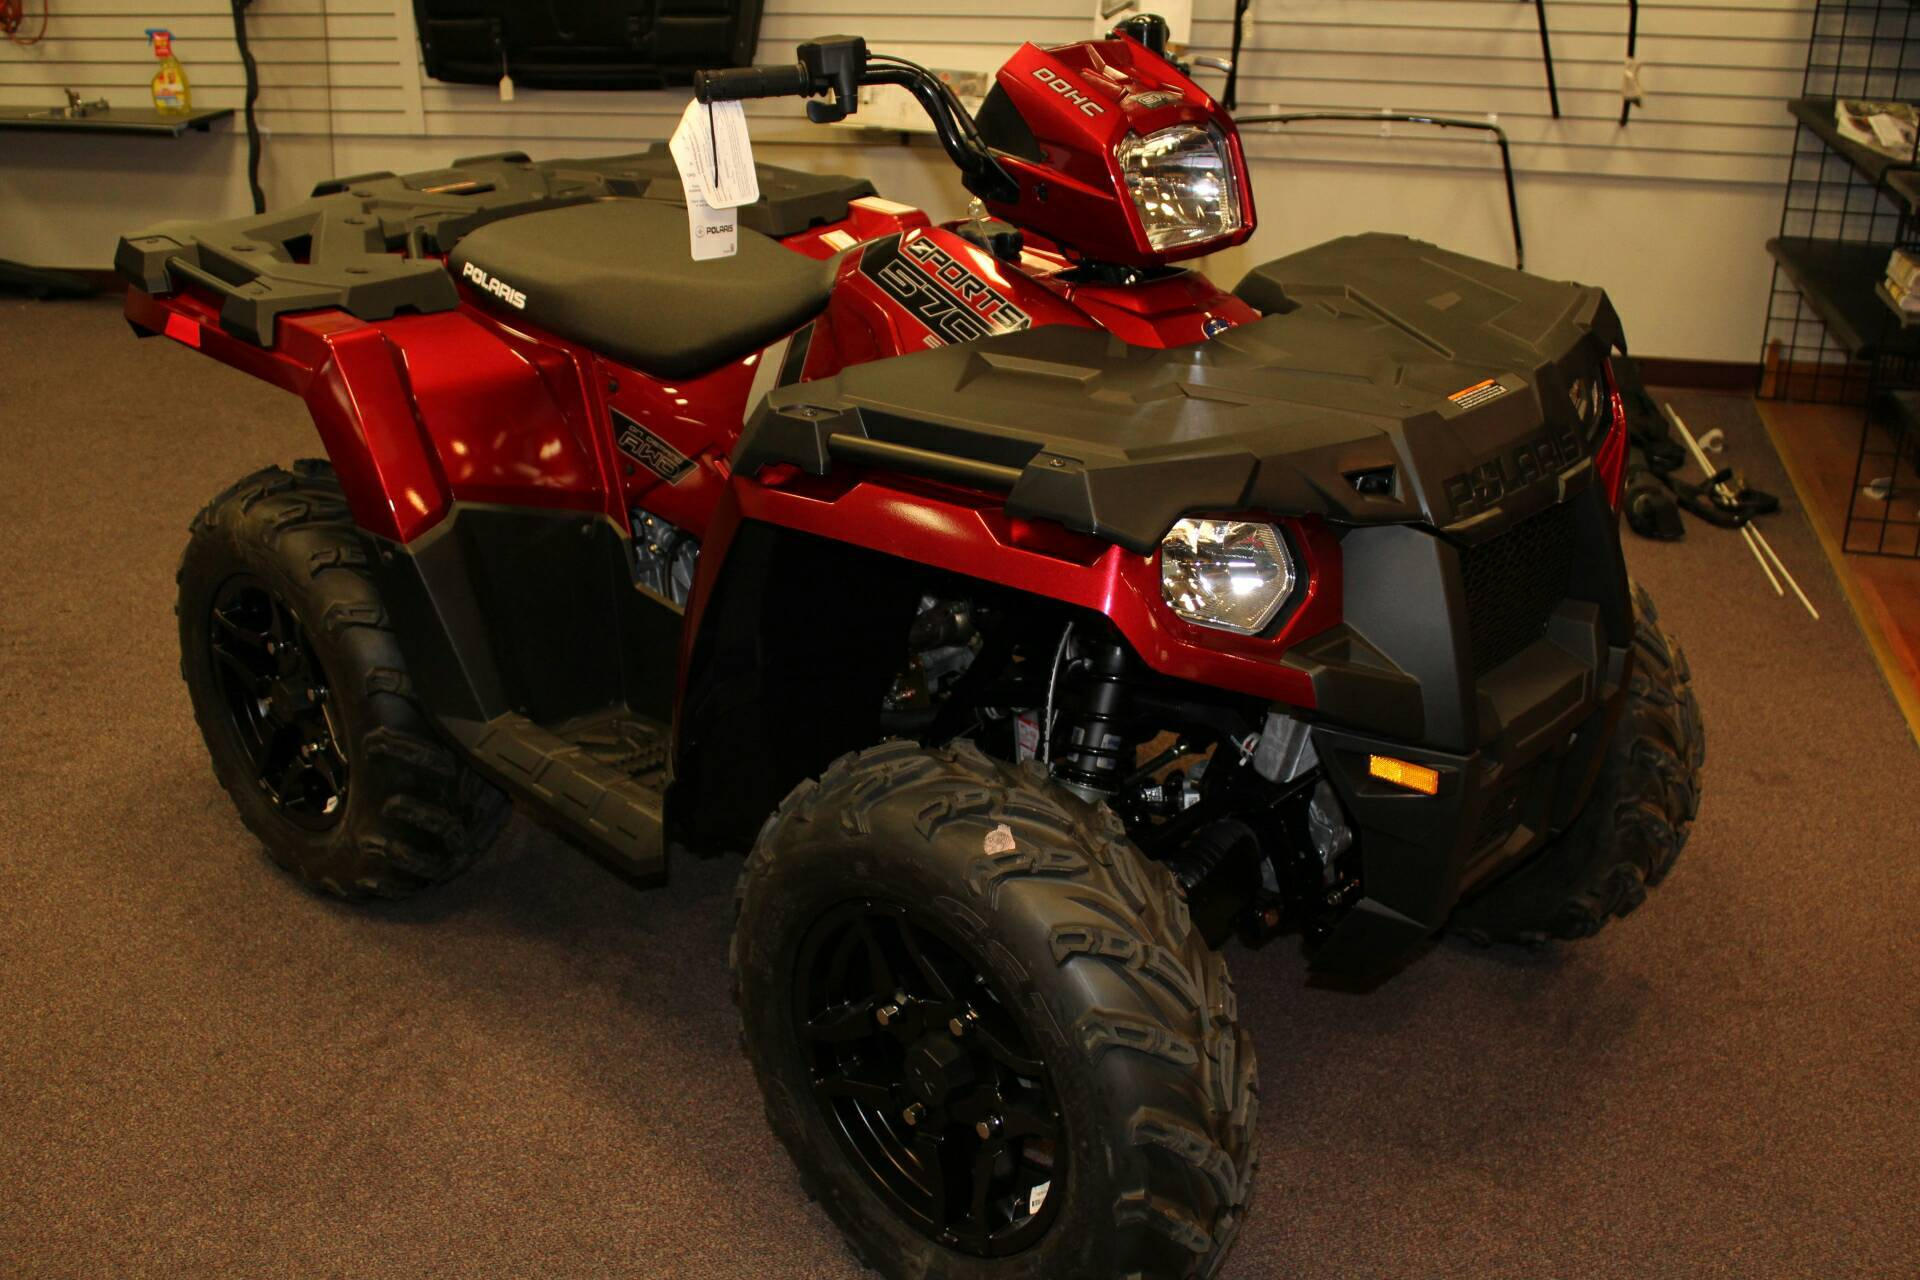 2017 Polaris Sportsman 570 SP for sale 4894